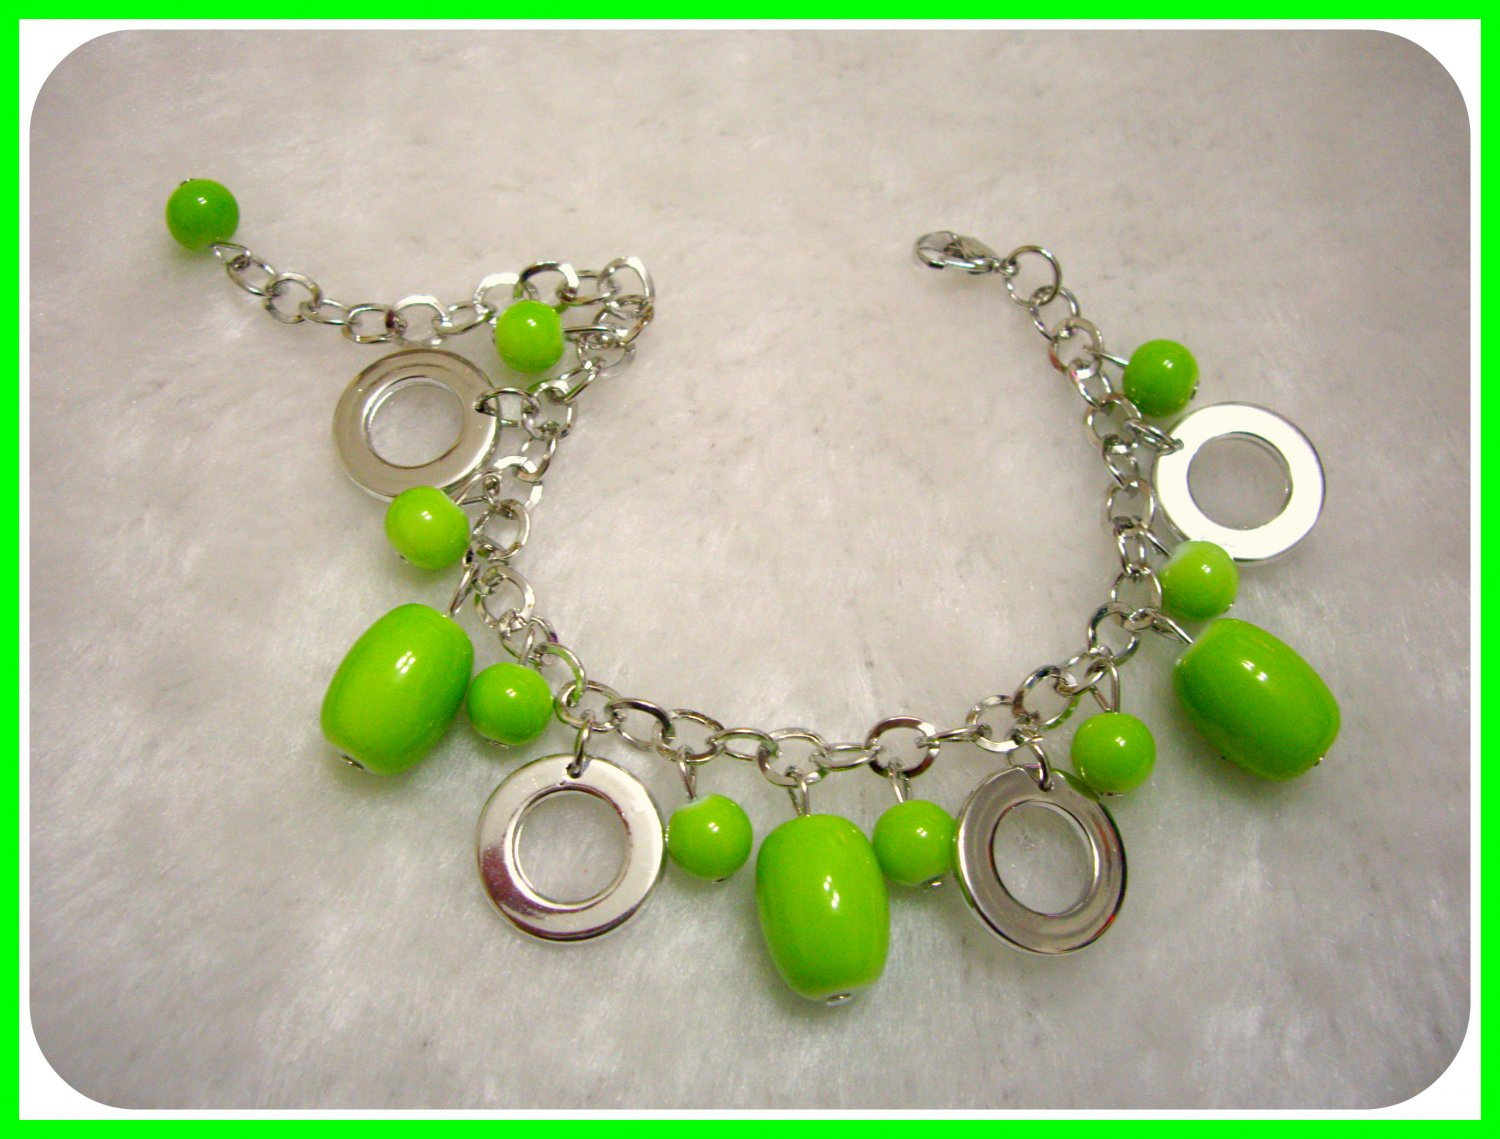 Fashionable Green Beads with Silver Hoop Bracelet